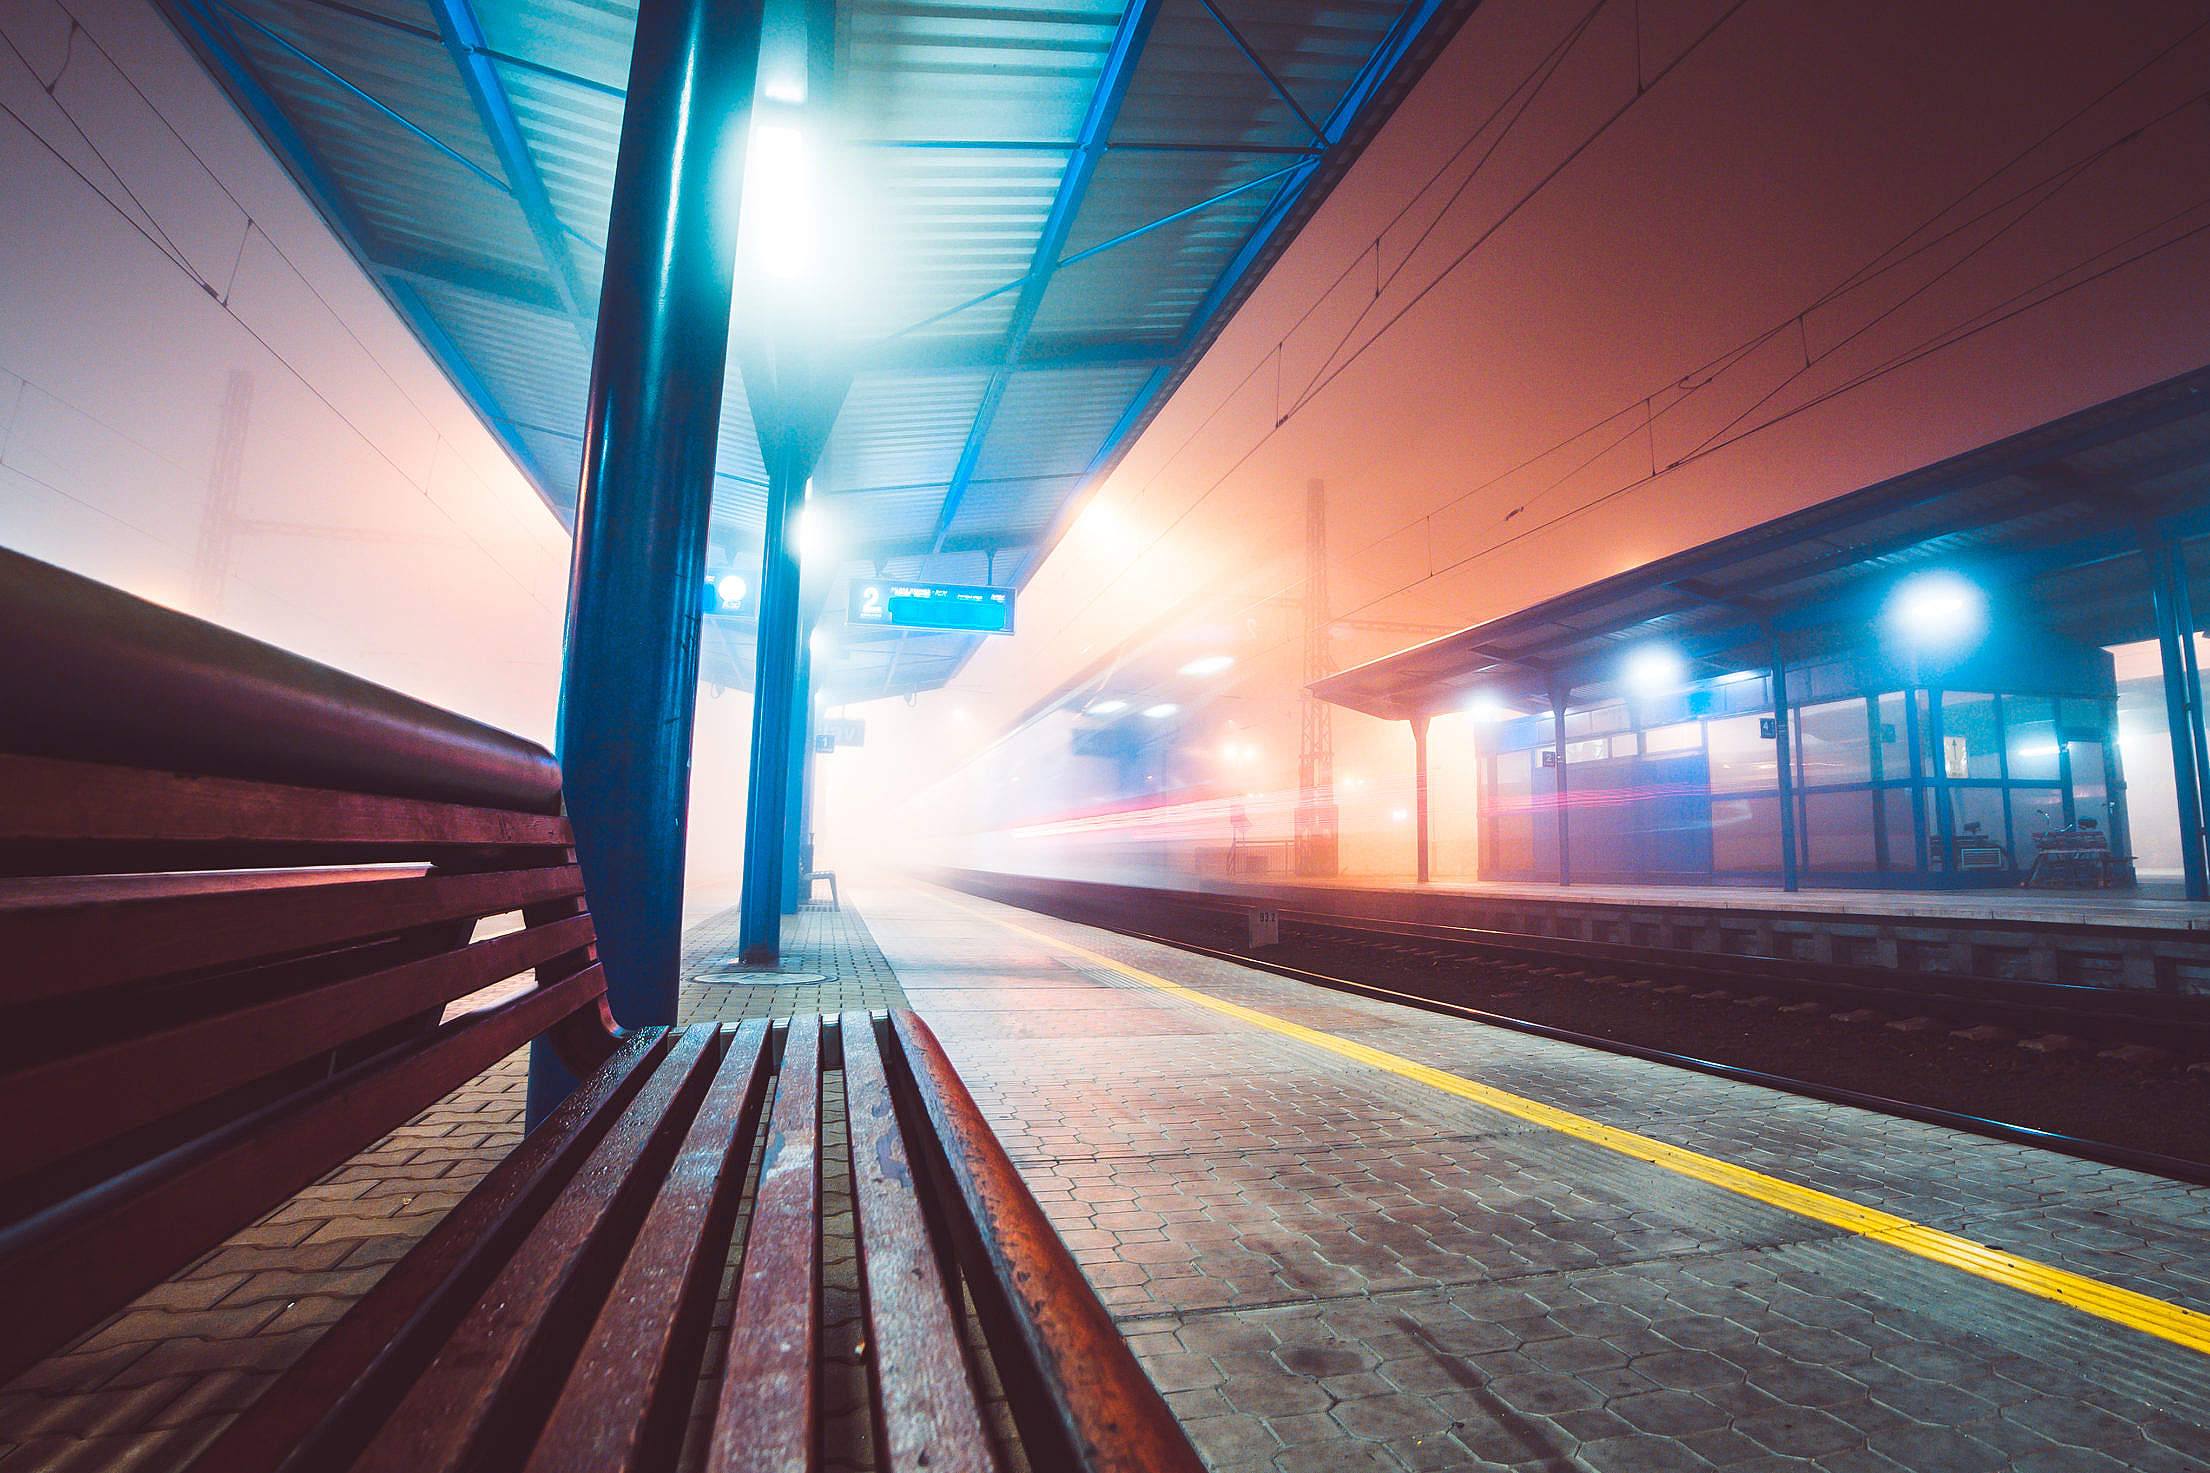 Train Leaving Railway Station in Foggy Night Free Stock Photo